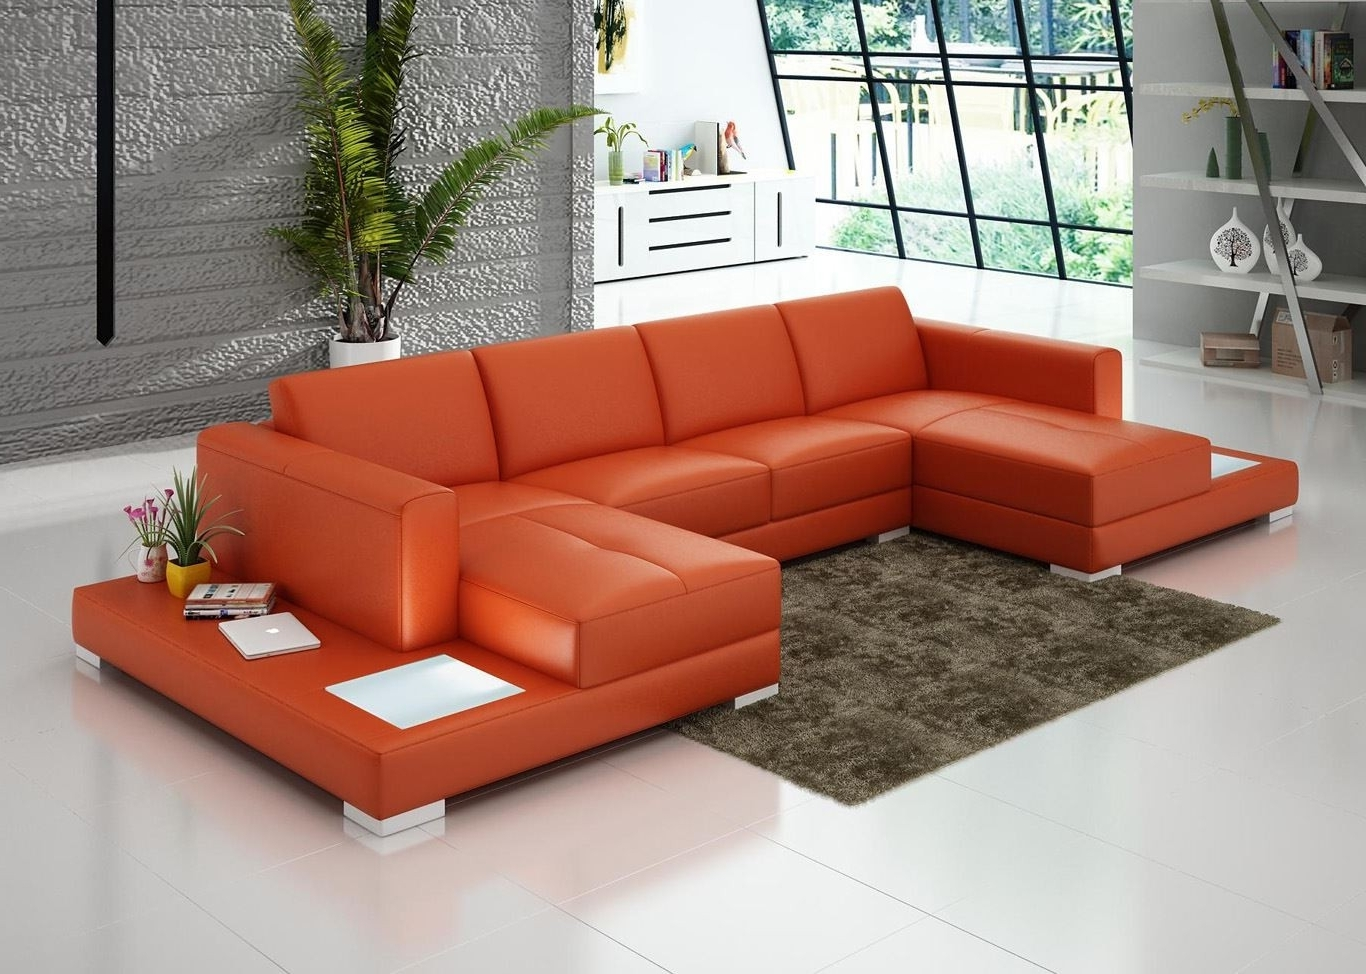 Popular Double Chaise Lounge Sofas Pertaining To U Shaped Orange Leather Sofa With Double Chaise Lounge And End (View 13 of 15)